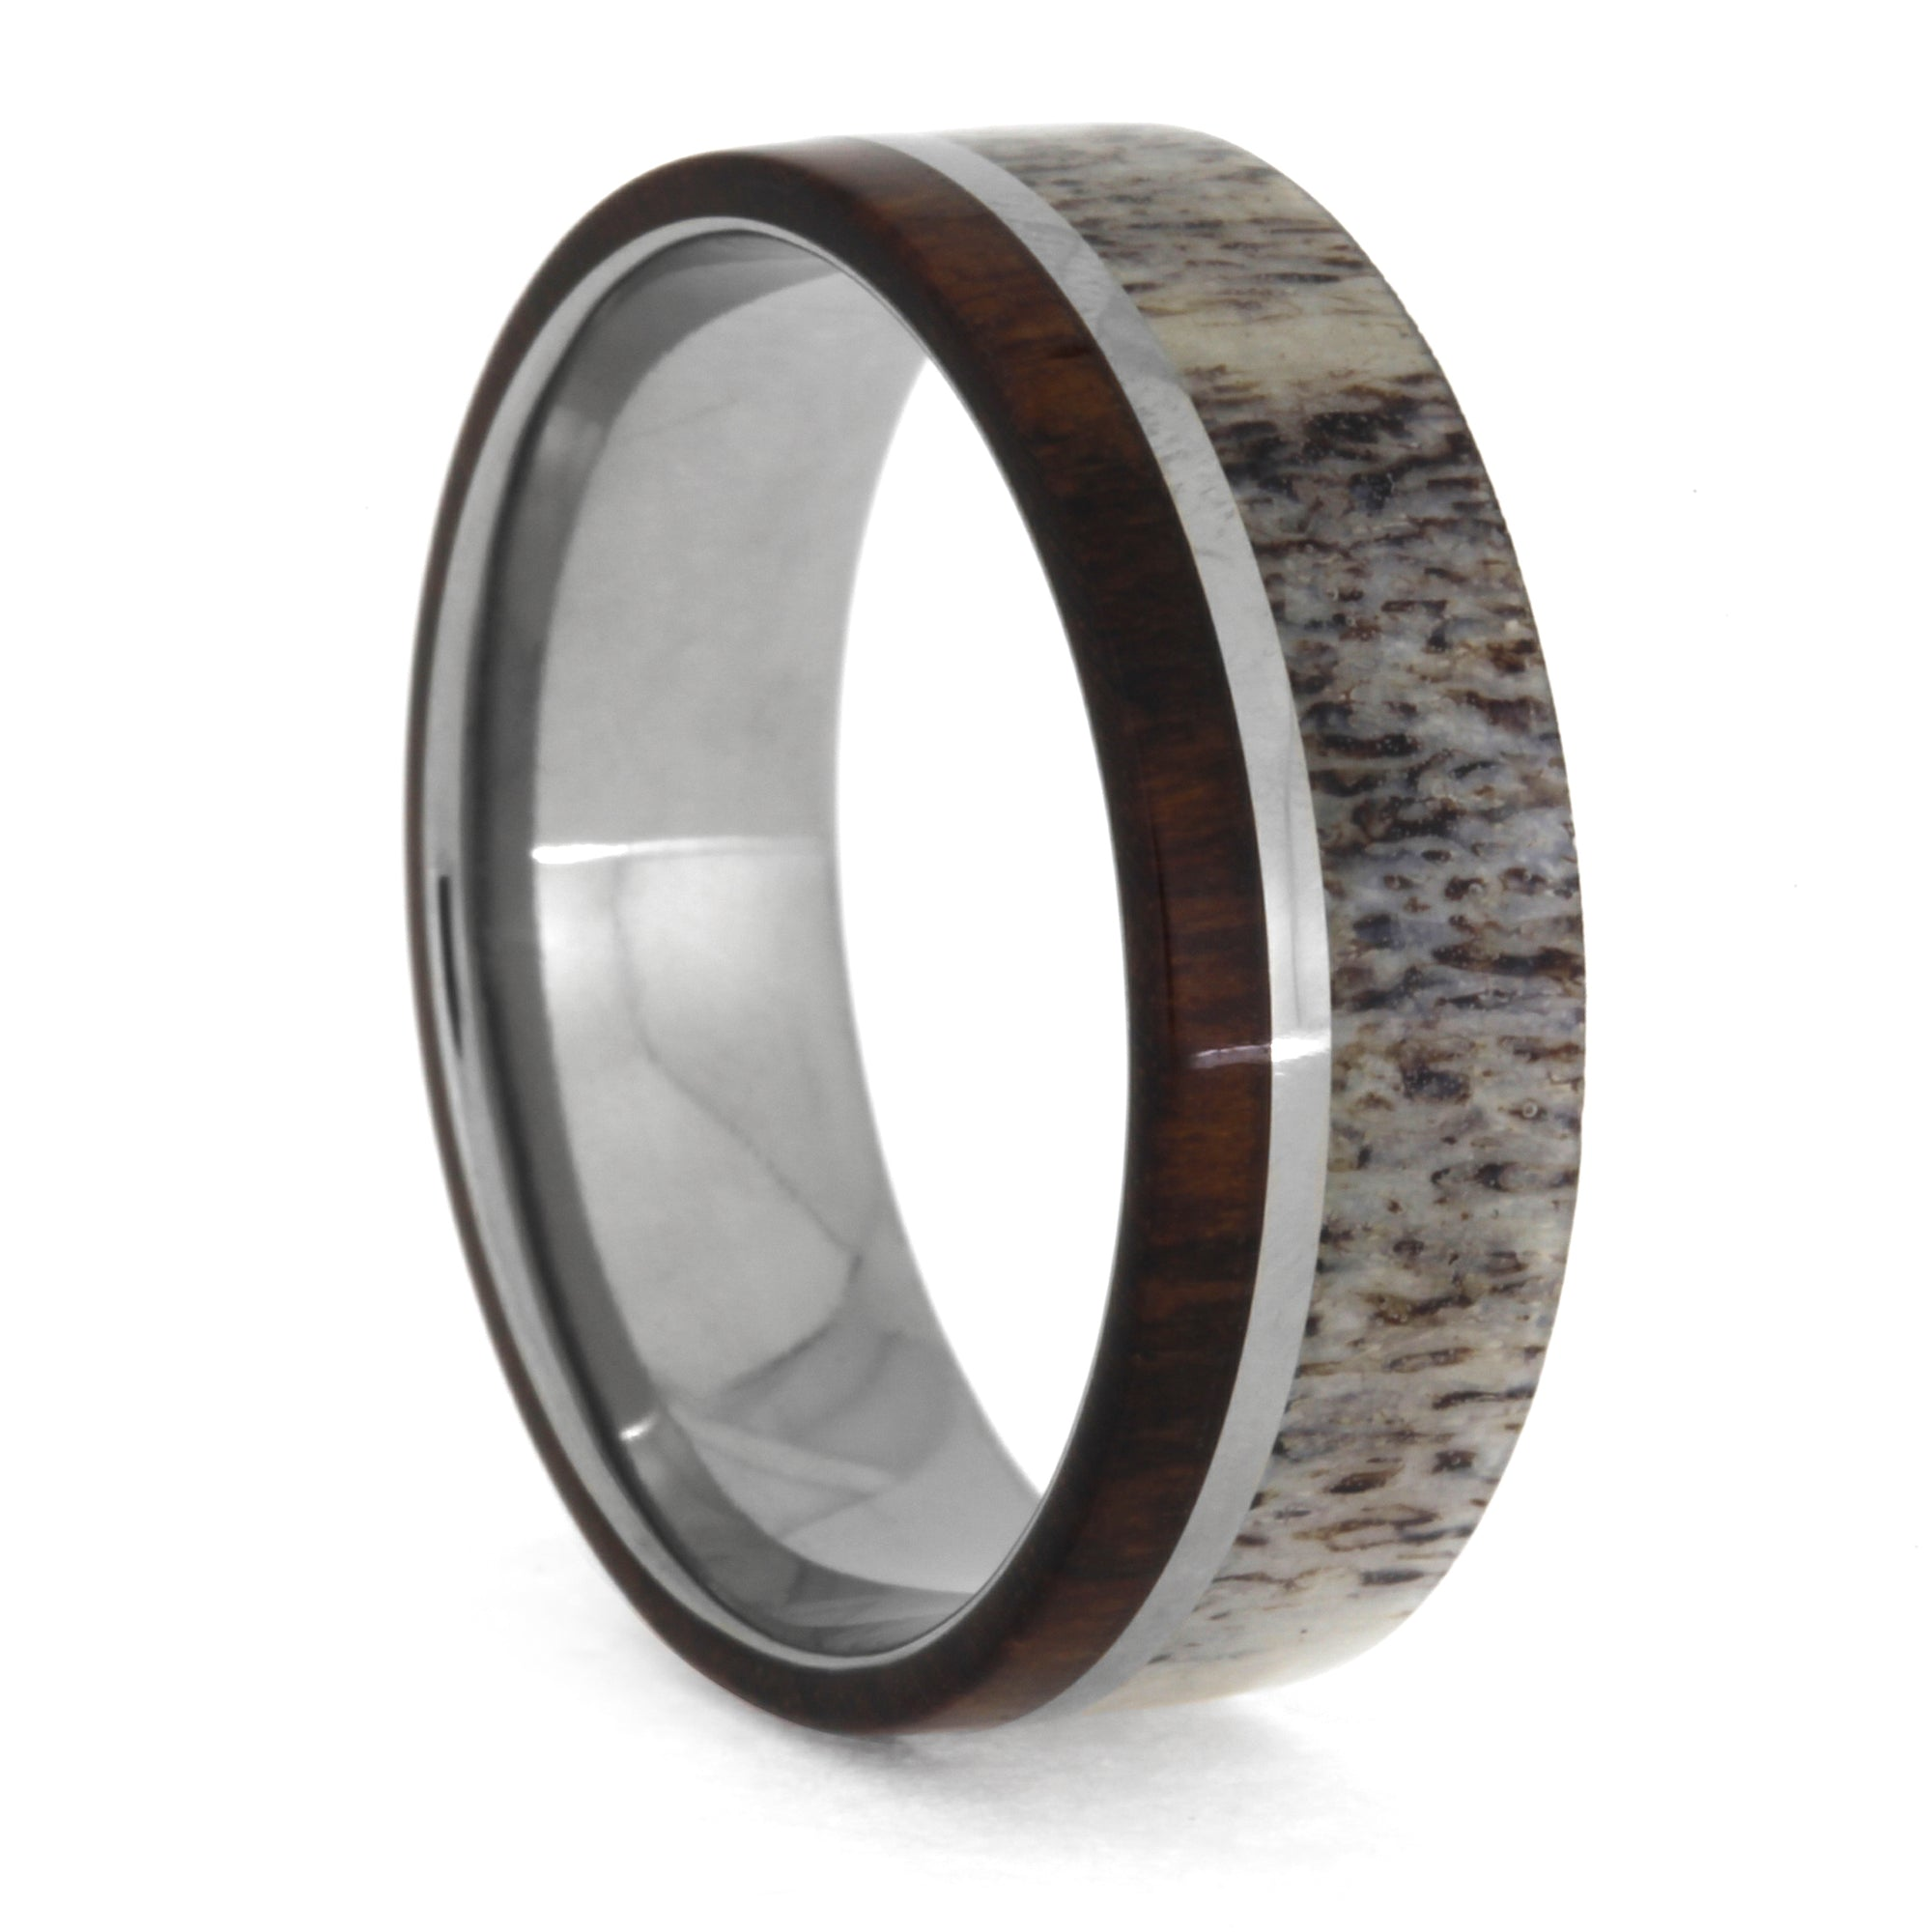 Deer Antler and Snakewood Ring in Titanium, Size 12-RS10434 - Jewelry by Johan